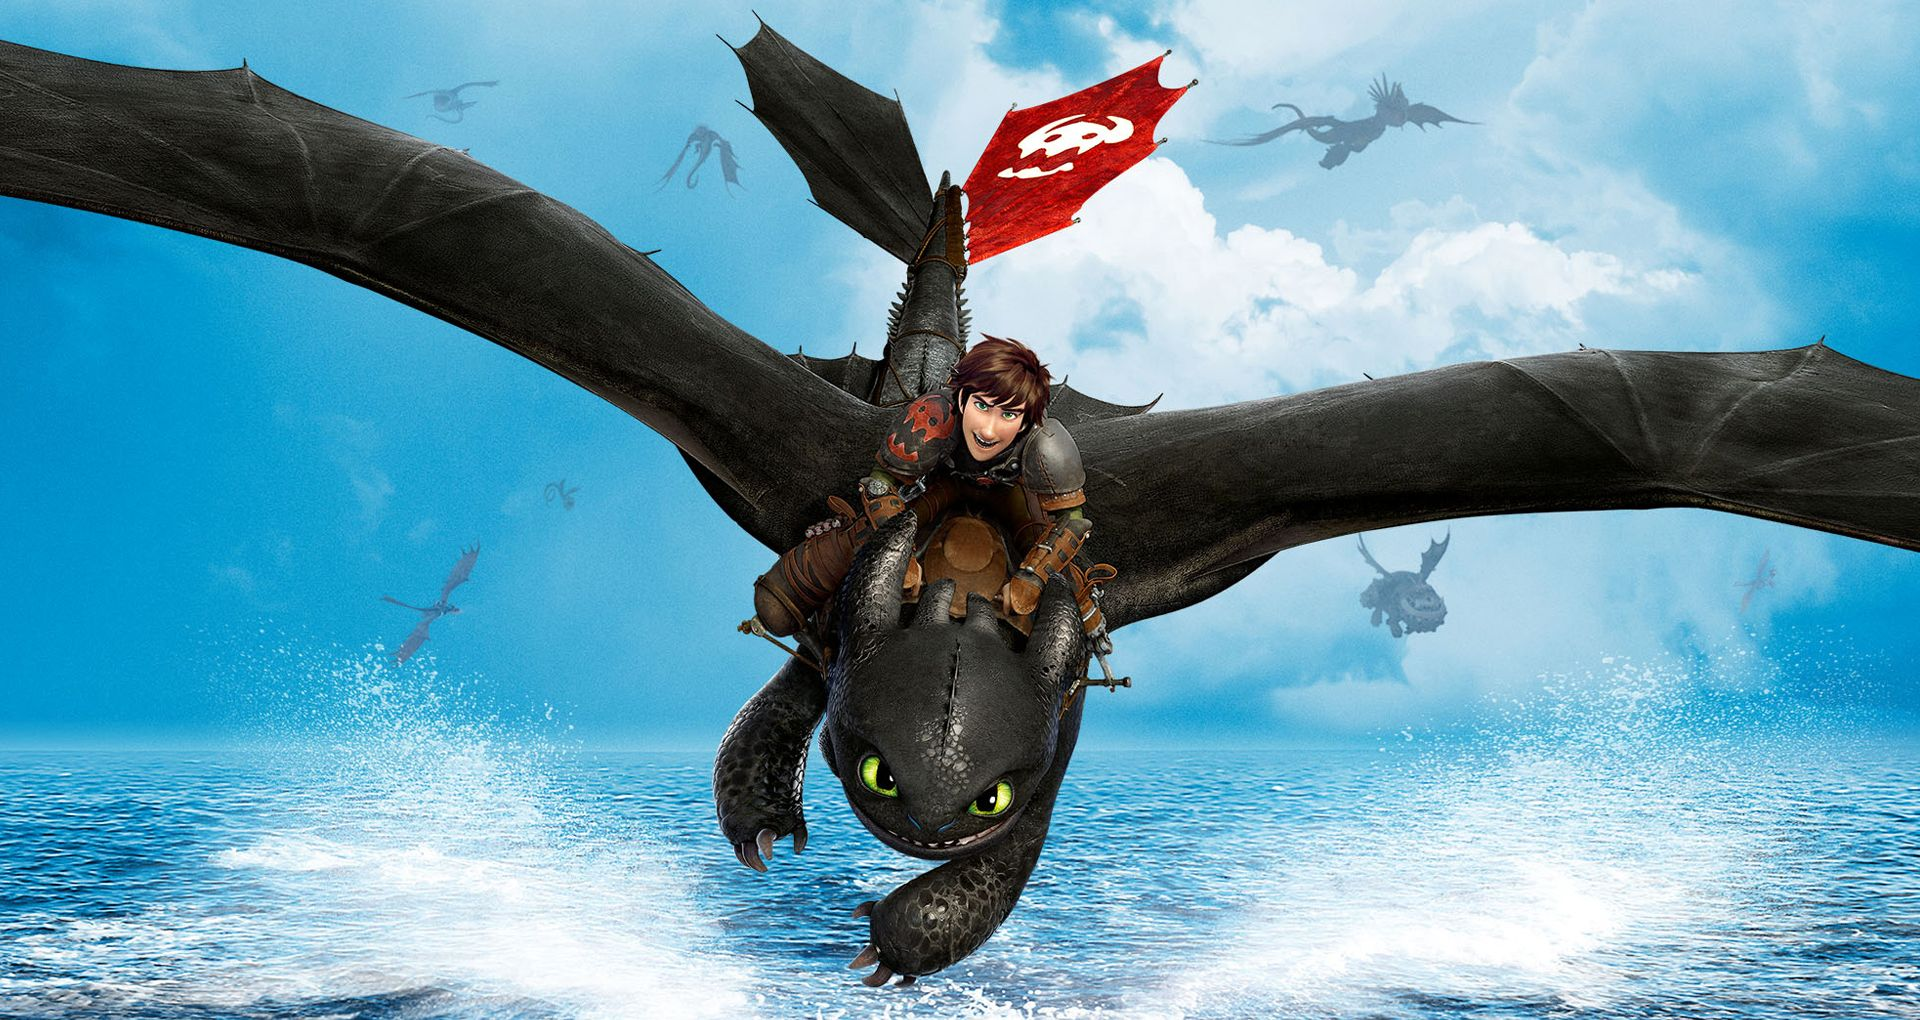 Hiccup and Toothless in their new adventure